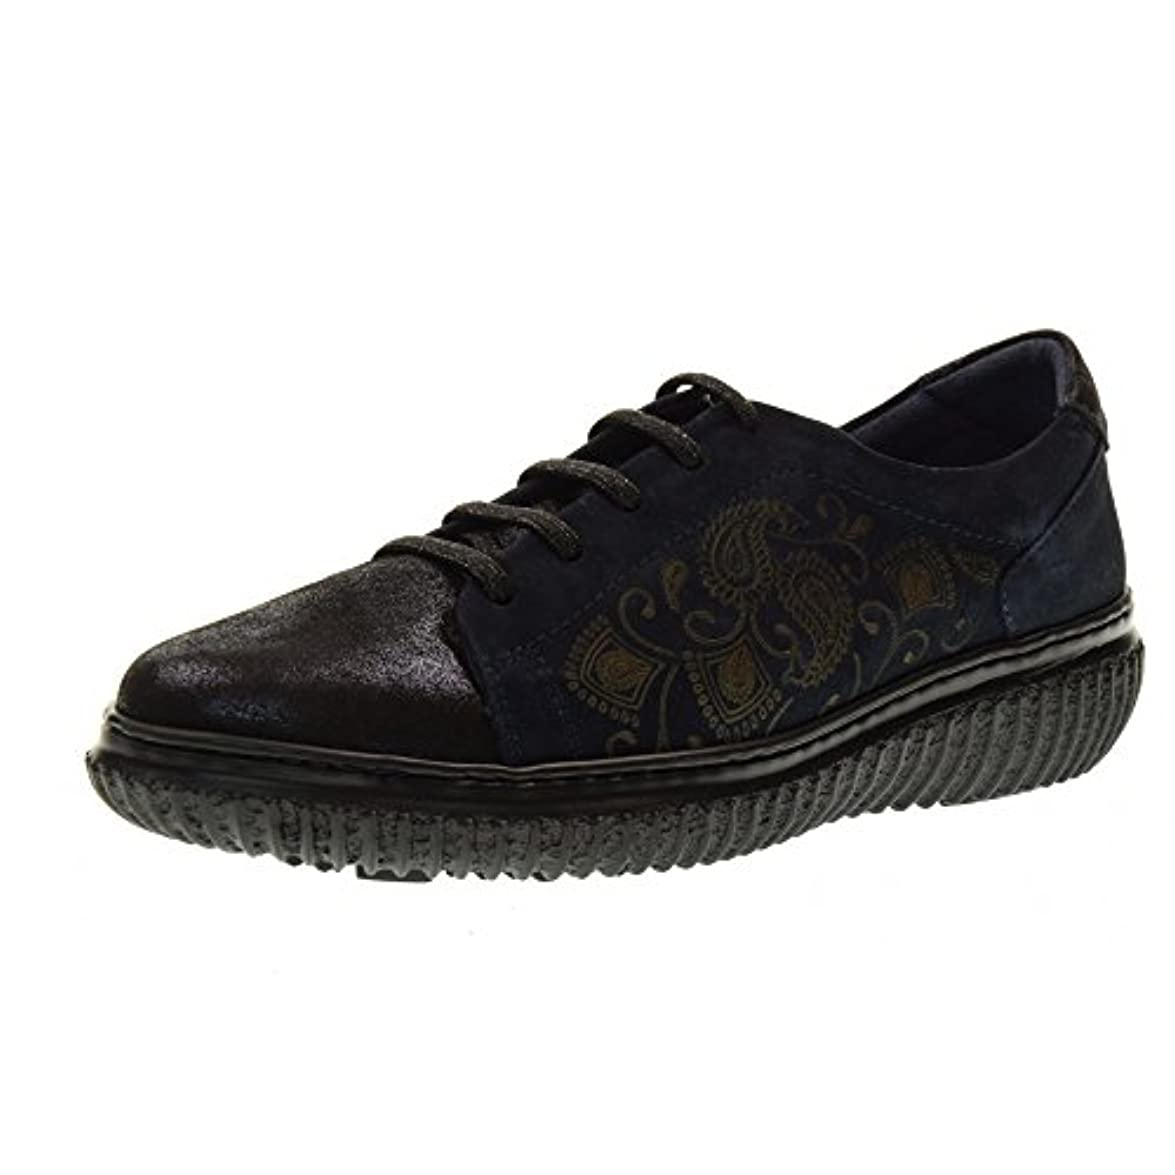 Callaghan Scarpe 3 Donna 22100 Sneakers Basse